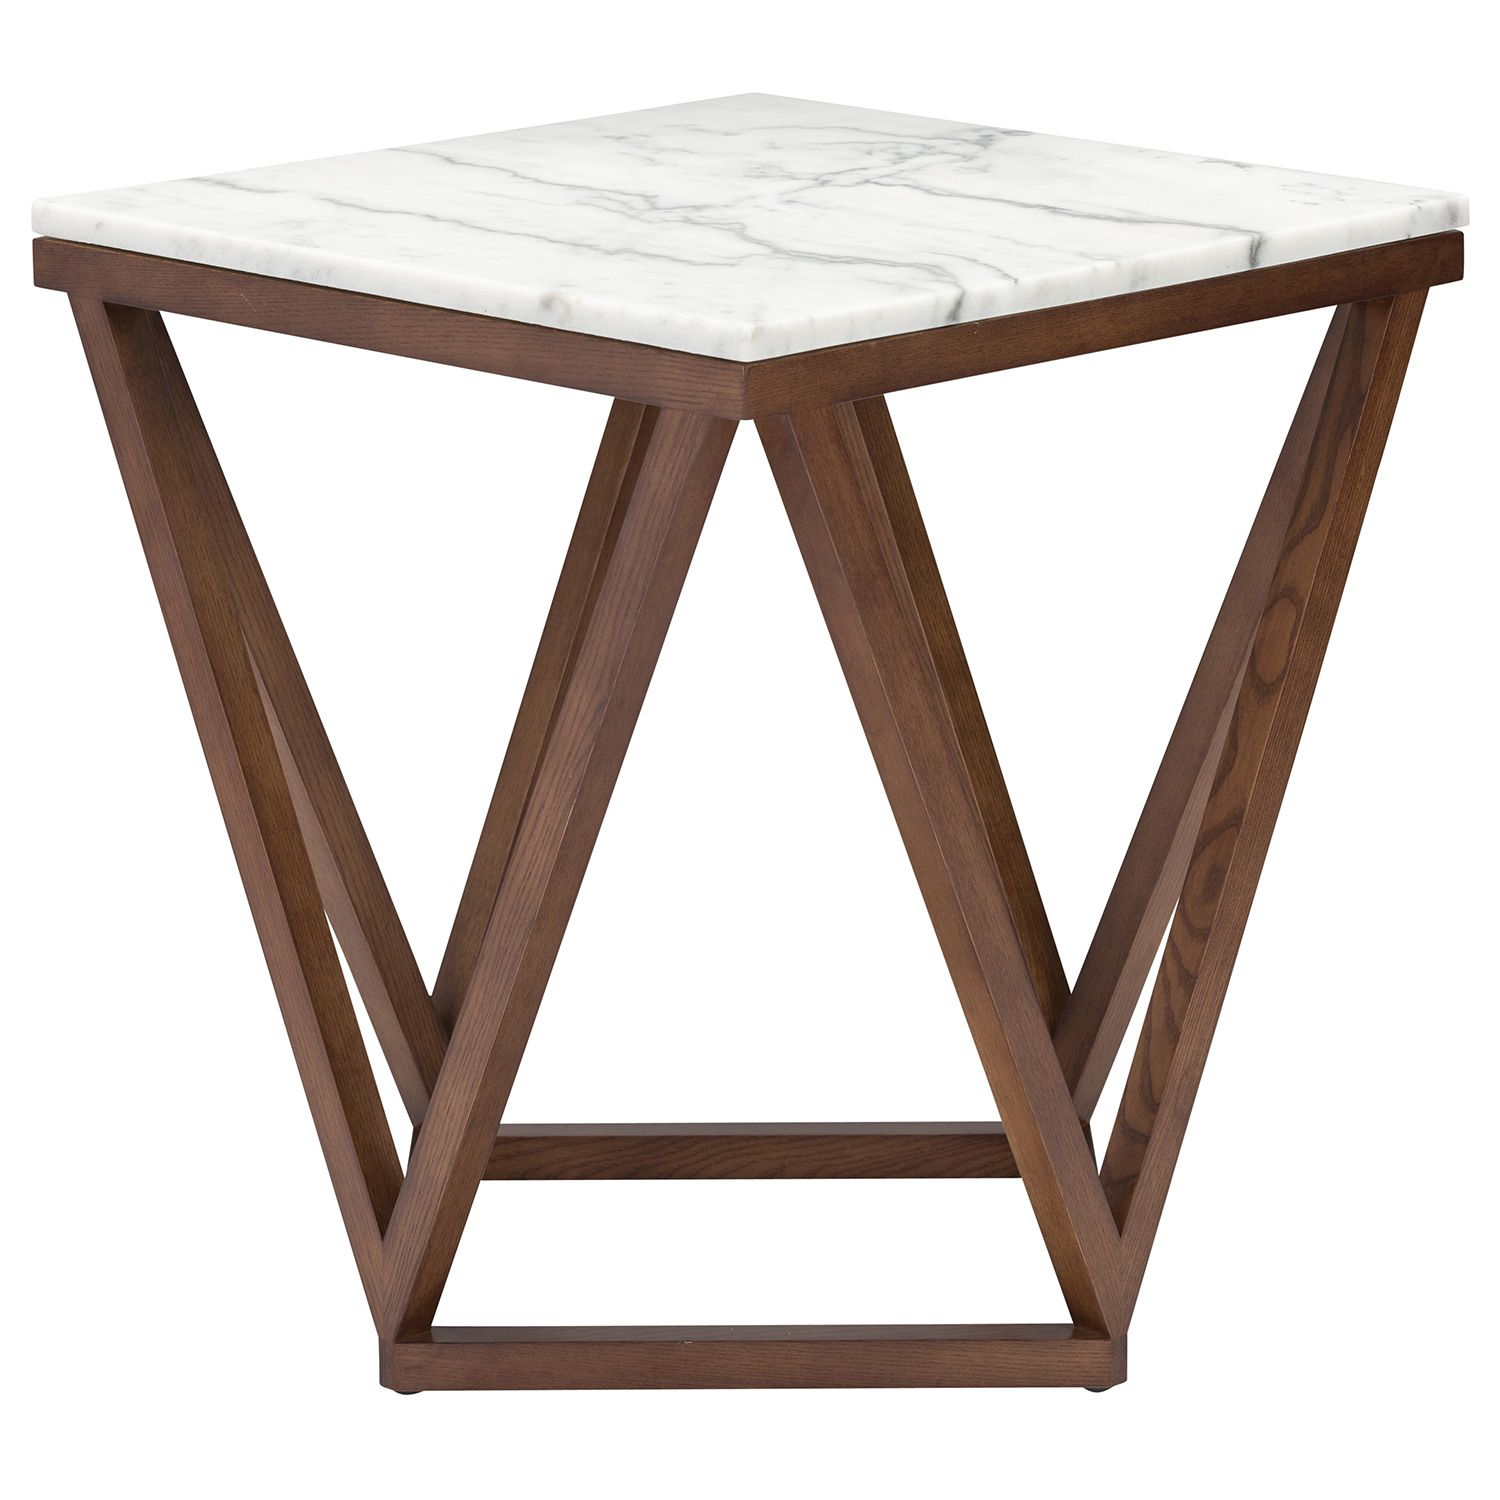 nuevo jasmine white marble side table zinc door black accent gold leaf coffee crescent supply red tables decor penny lamps oak kitchen skinny couch perspex nest furniture